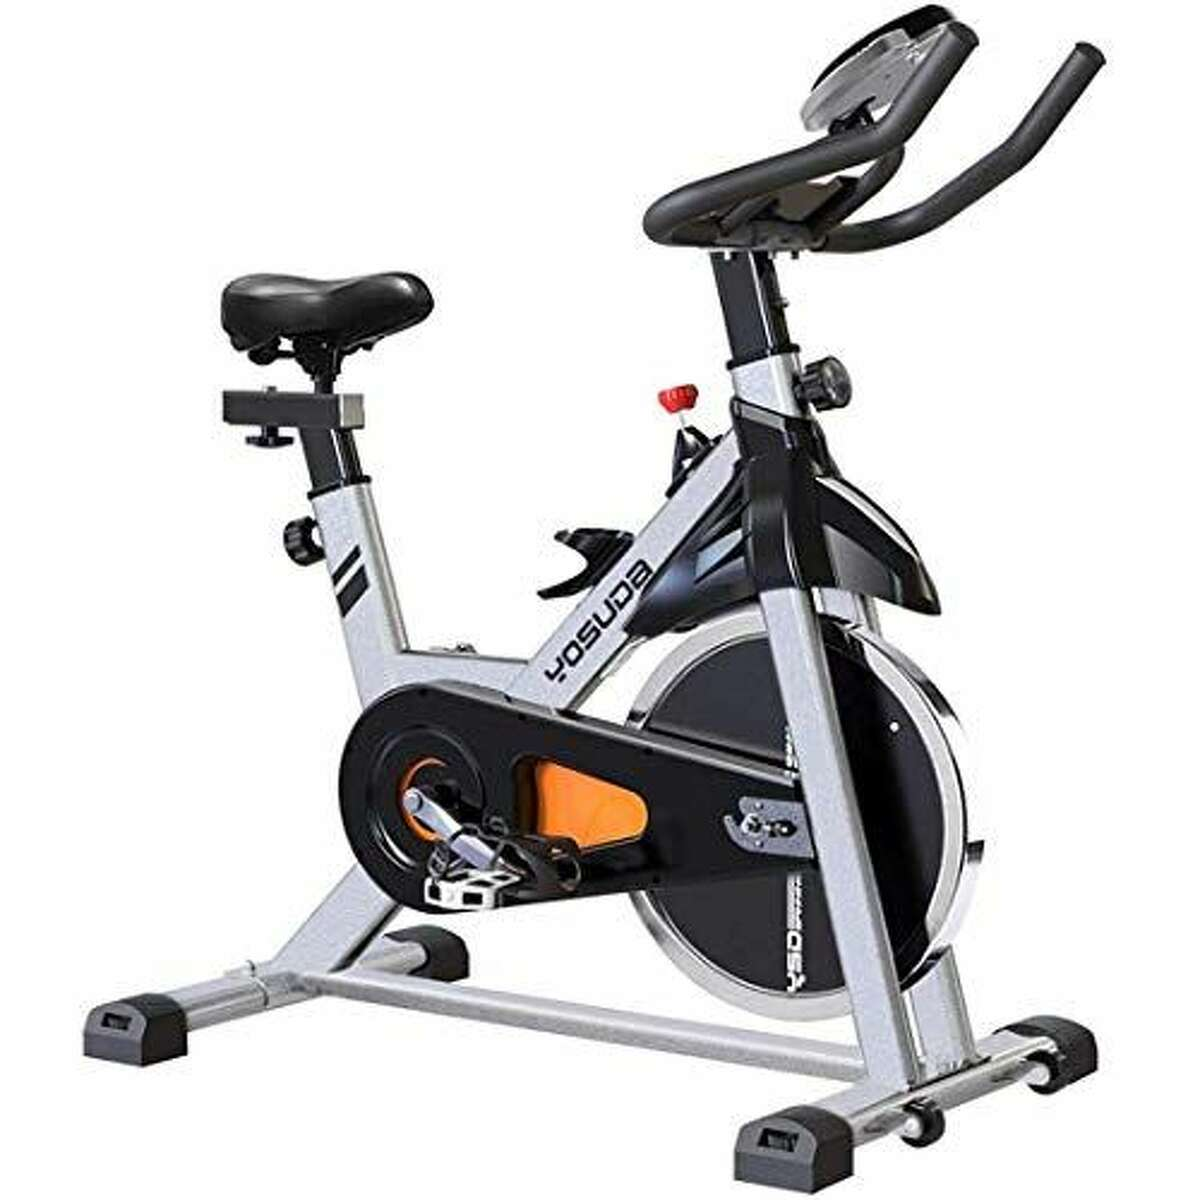 1) YOSUDA Indoor Cycling Bike Stationary : $339.99 CHECK PRICE The YOSUDA. Haven't you heard of it? That's probably because the company only makes exercise bikes. This is a super quiet, belt-driven bike that won't drown out the TV while you're getting in your afternoon workout. Overall, the YOSUDA is a good bike with a killer 30-day full refund guarantee and 1-year free parts replacement warranty. While this bike is definitely made with the budget-conscious in mind, it's also one of the most highly rated on Amazon with over 700 reviews and 4.3/5 stars as of this writing.